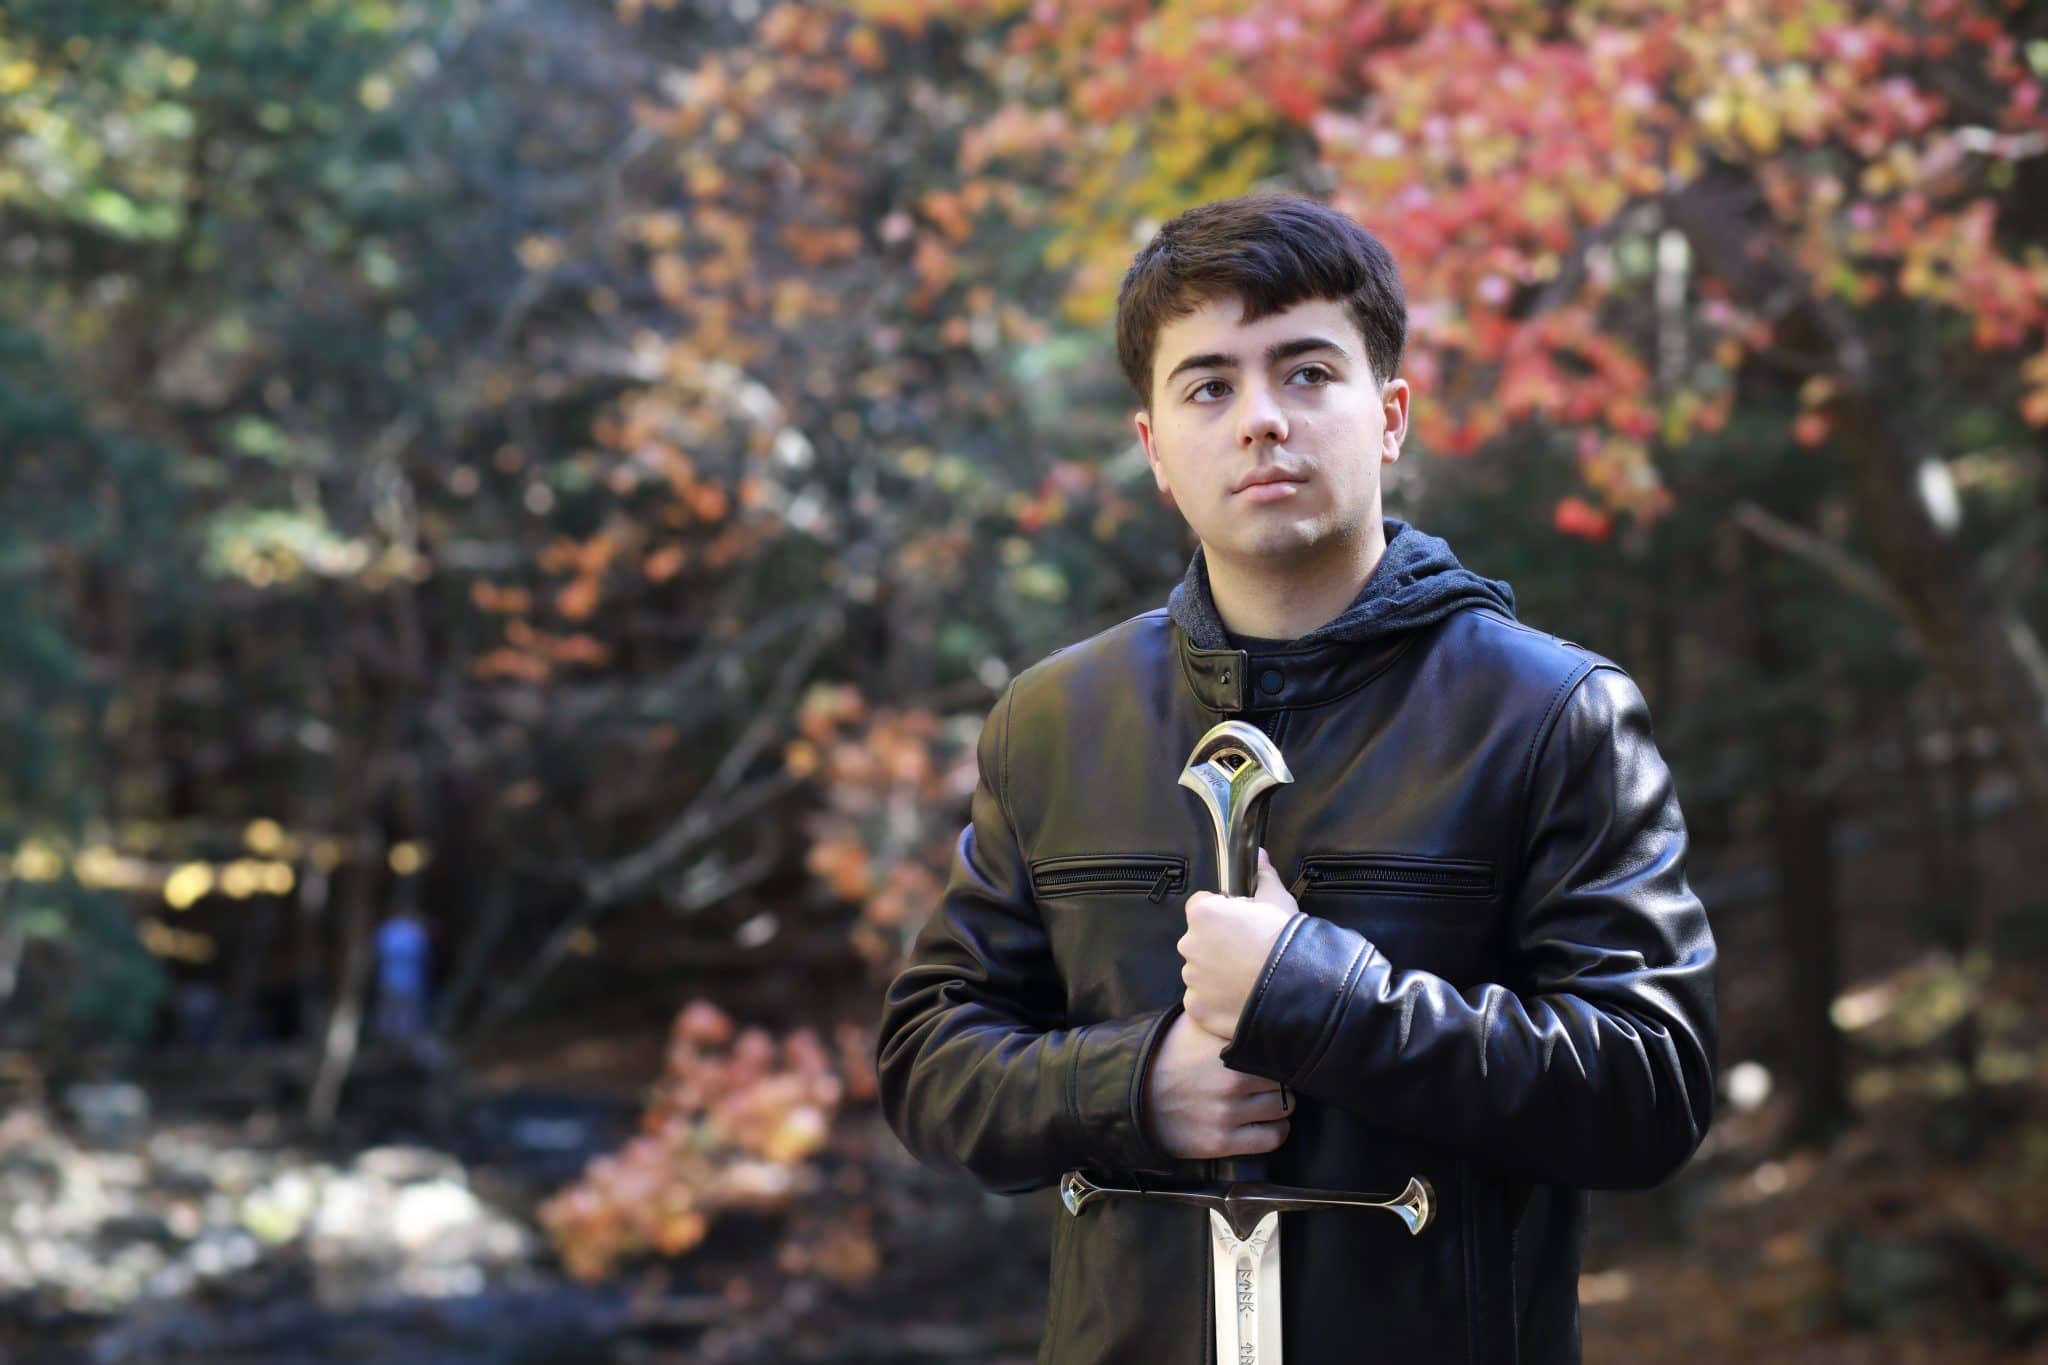 Senior boy in leather jacket holding a giant sword on a bridge with fall colored trees in the background